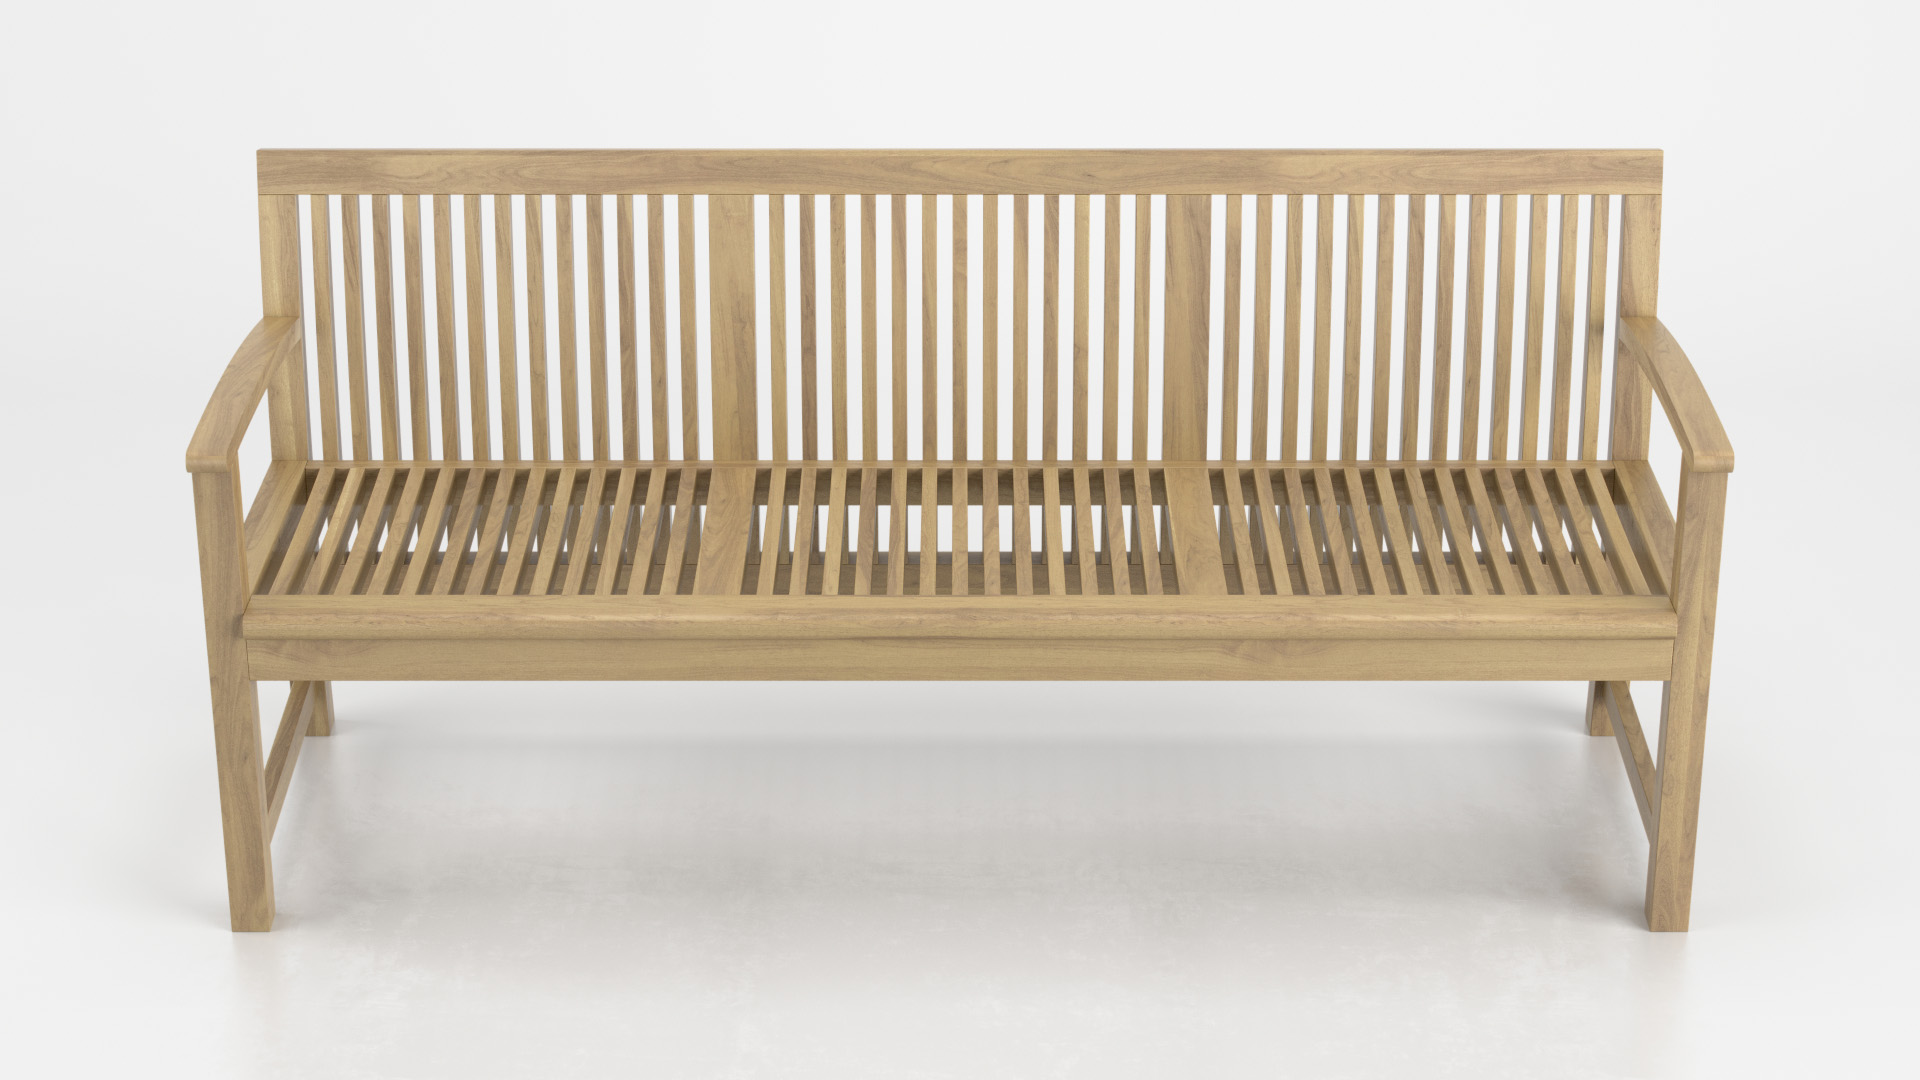 Tribu_Praslin_Bench_WhiteSet_01_0005